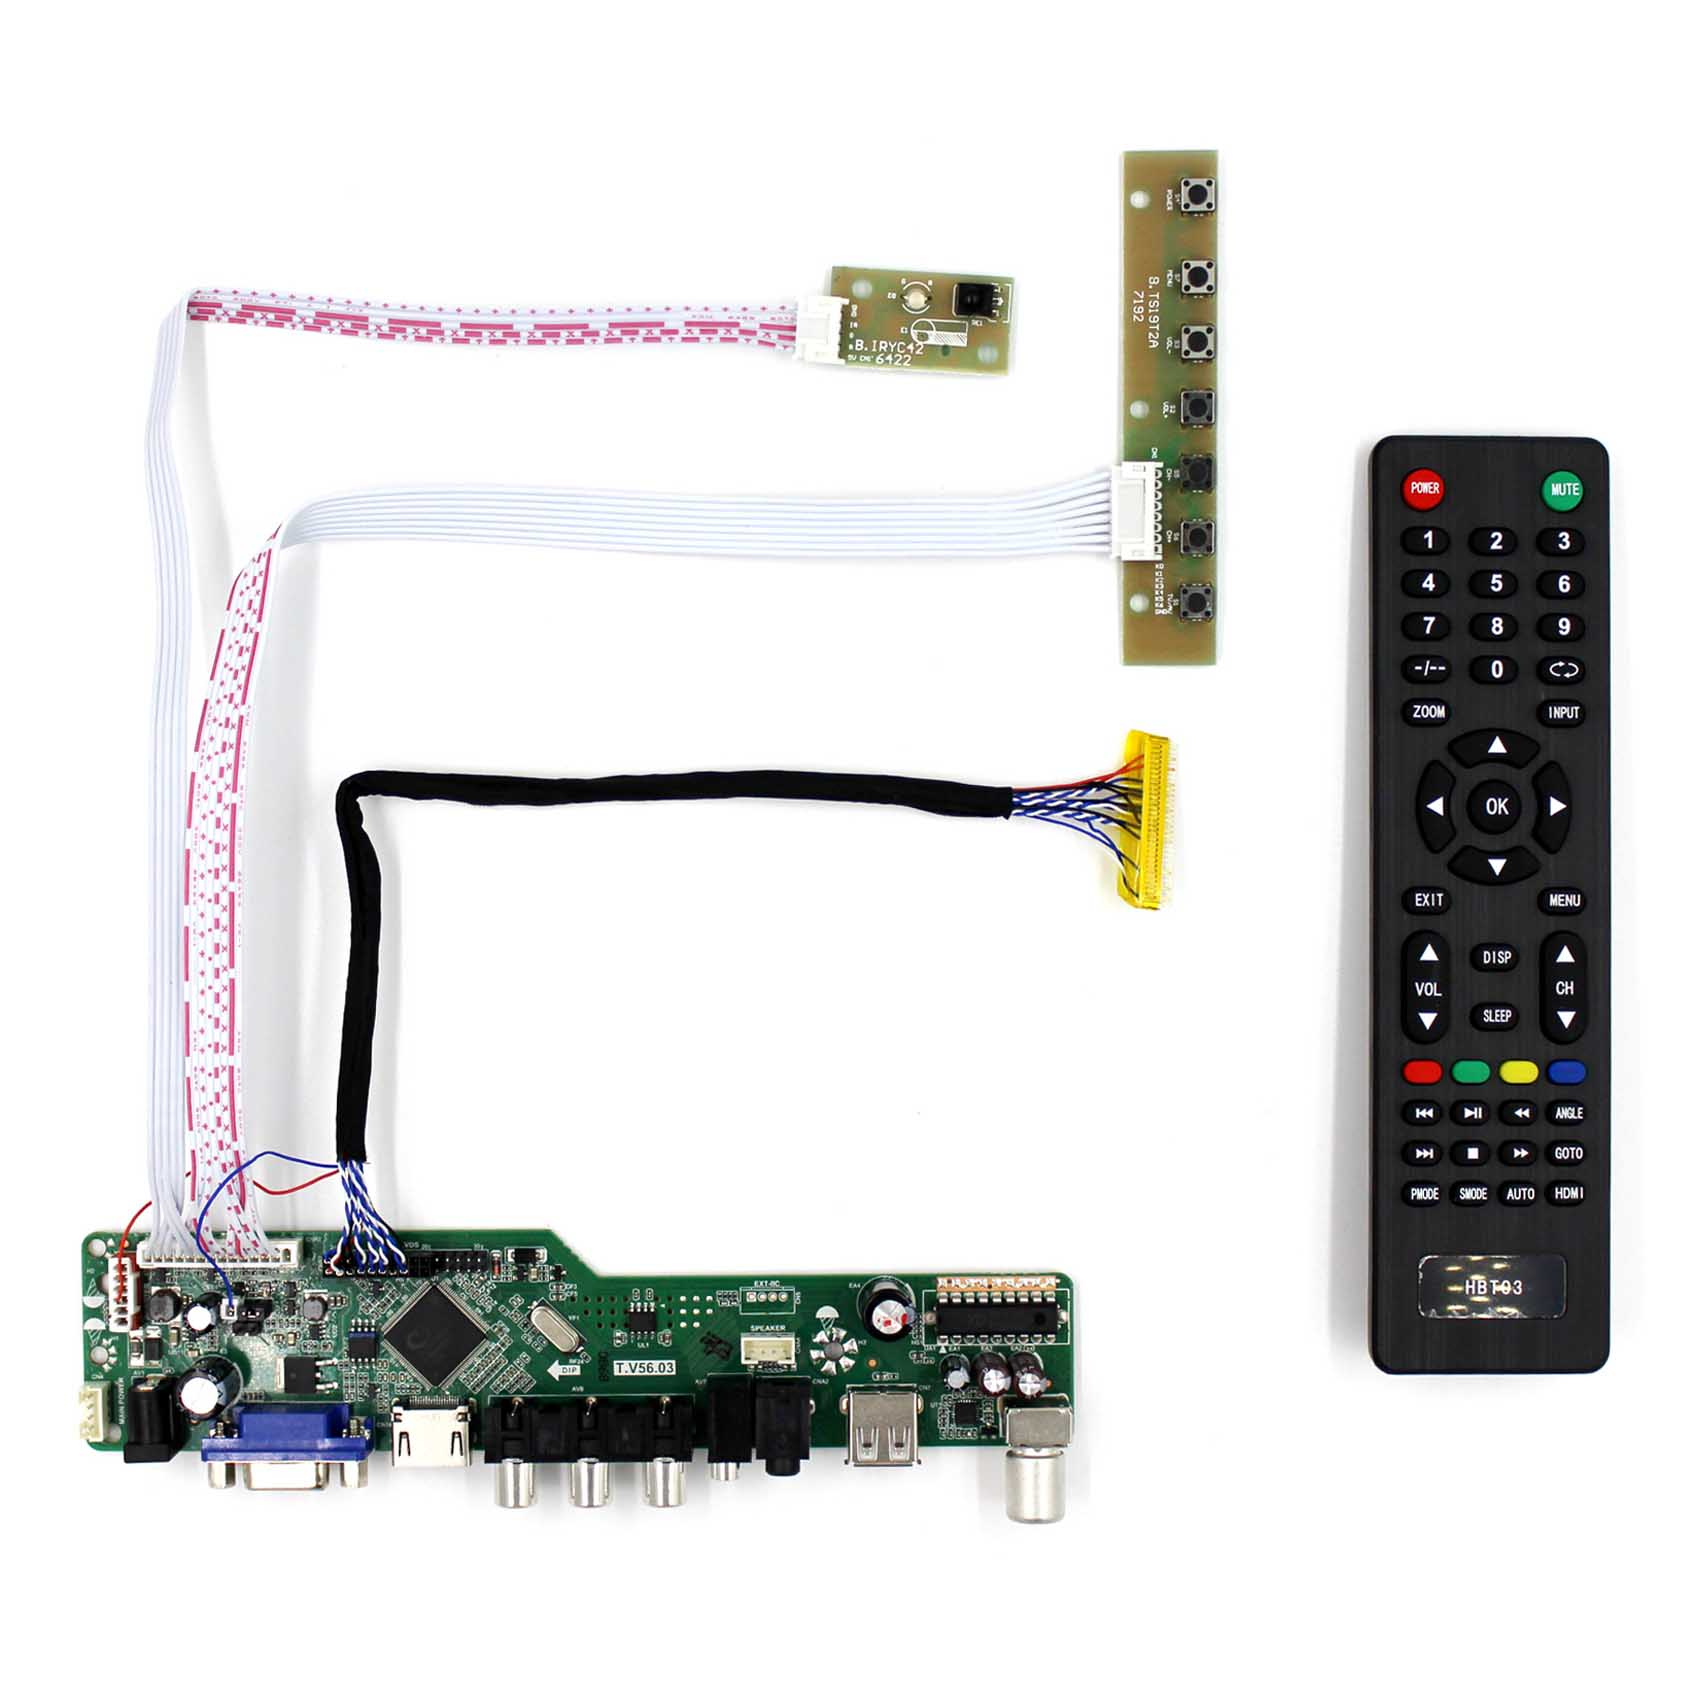 TV HDMI VGA AV USB AUDIO LCD Controller Board Work for 8 9inch 10inch CLAA089NA0ACW HSD100IFW1